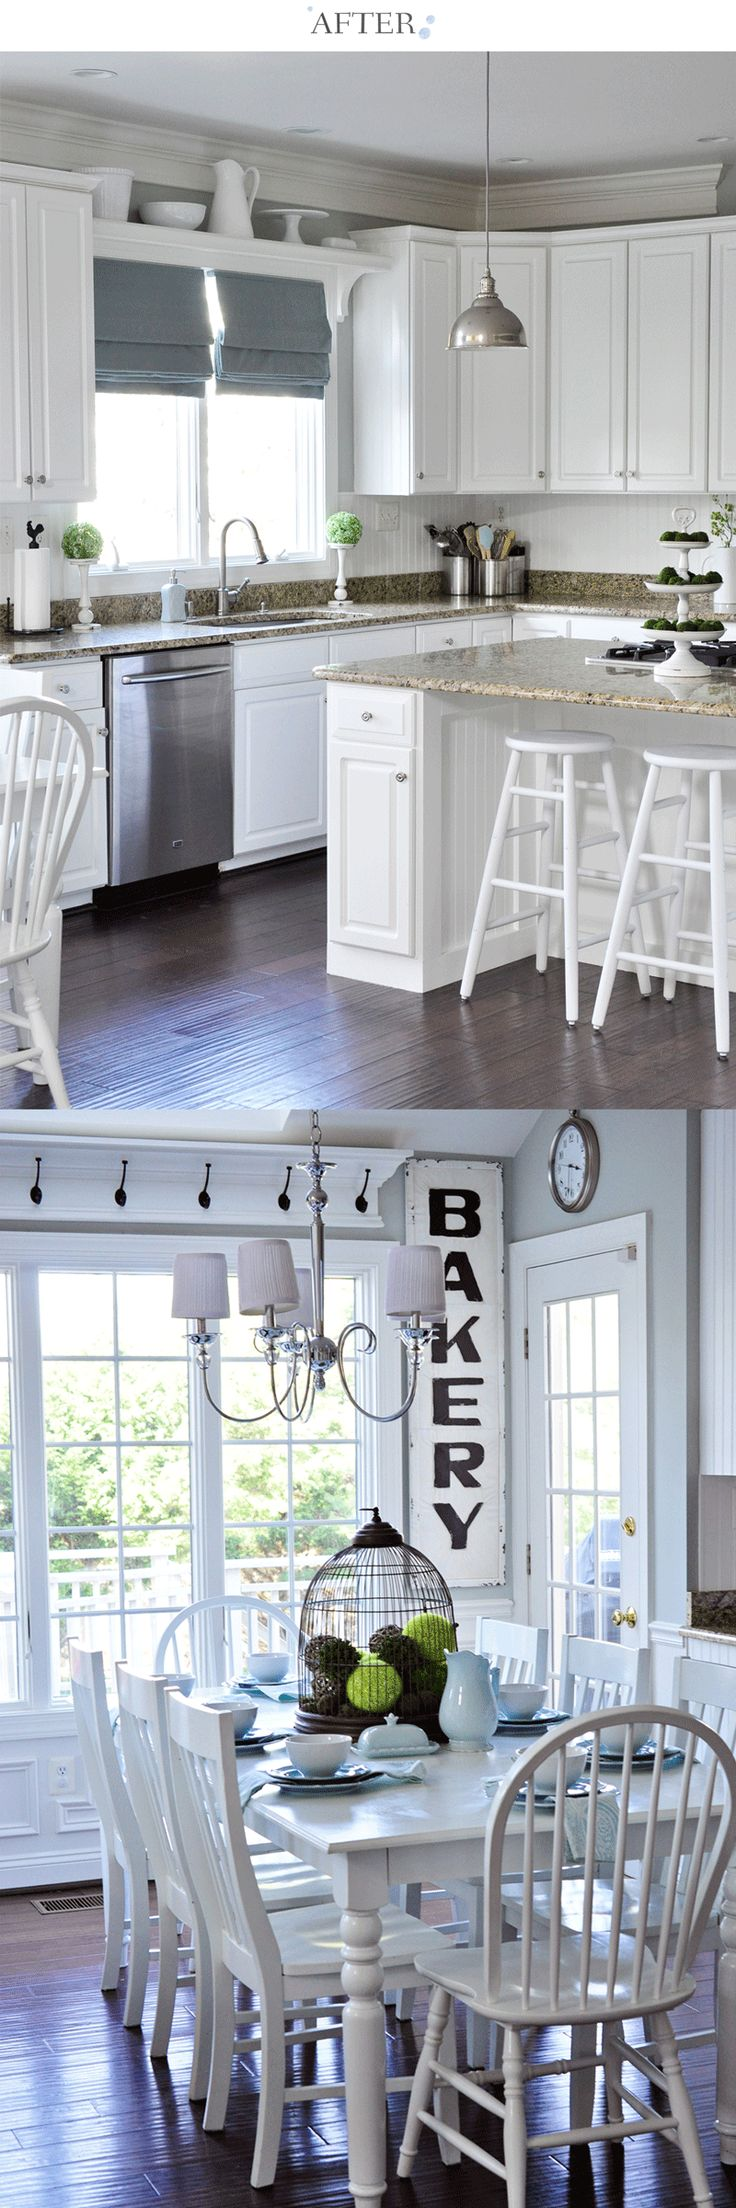 10 Great ideas for upgrade the kitchen 4